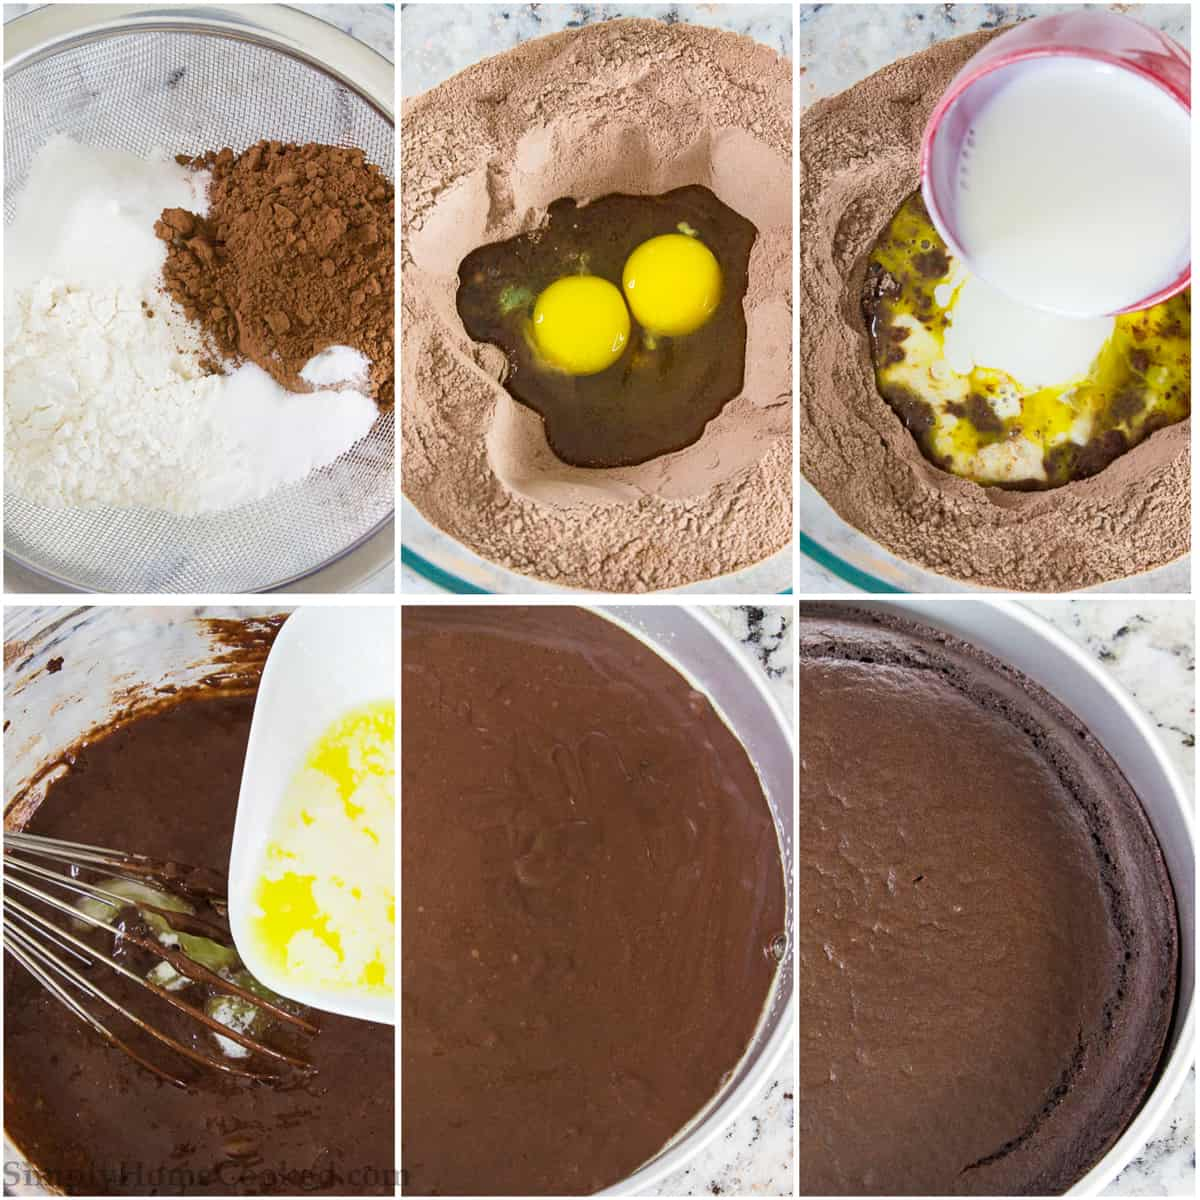 Start with sifted dry ingredients for the best results in making this chocolate mousse cake recipe